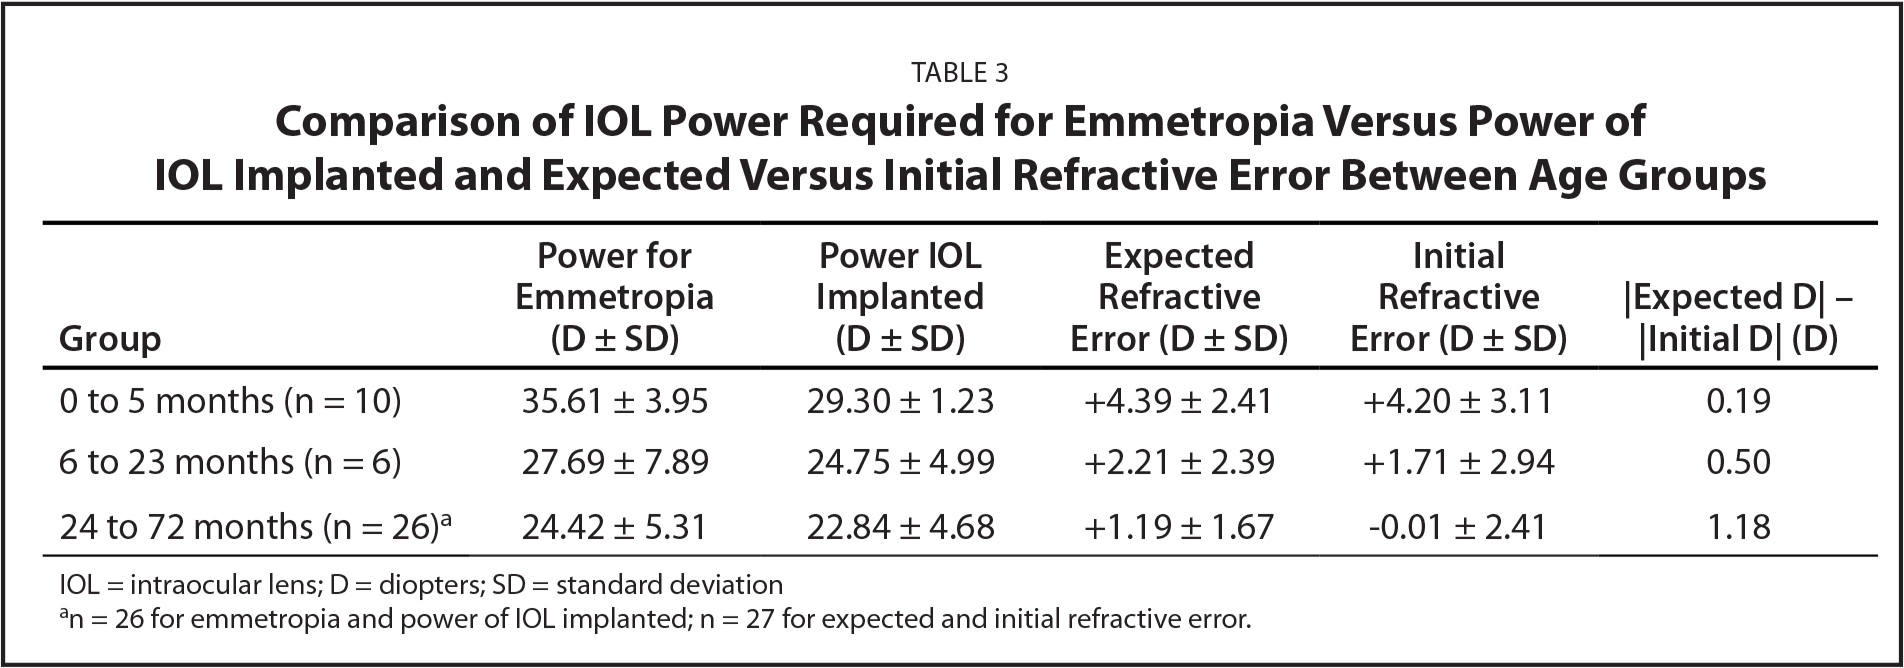 Comparison of IOL Power Required for Emmetropia Versus Power of IOL Implanted and Expected Versus Initial Refractive Error Between Age Groups